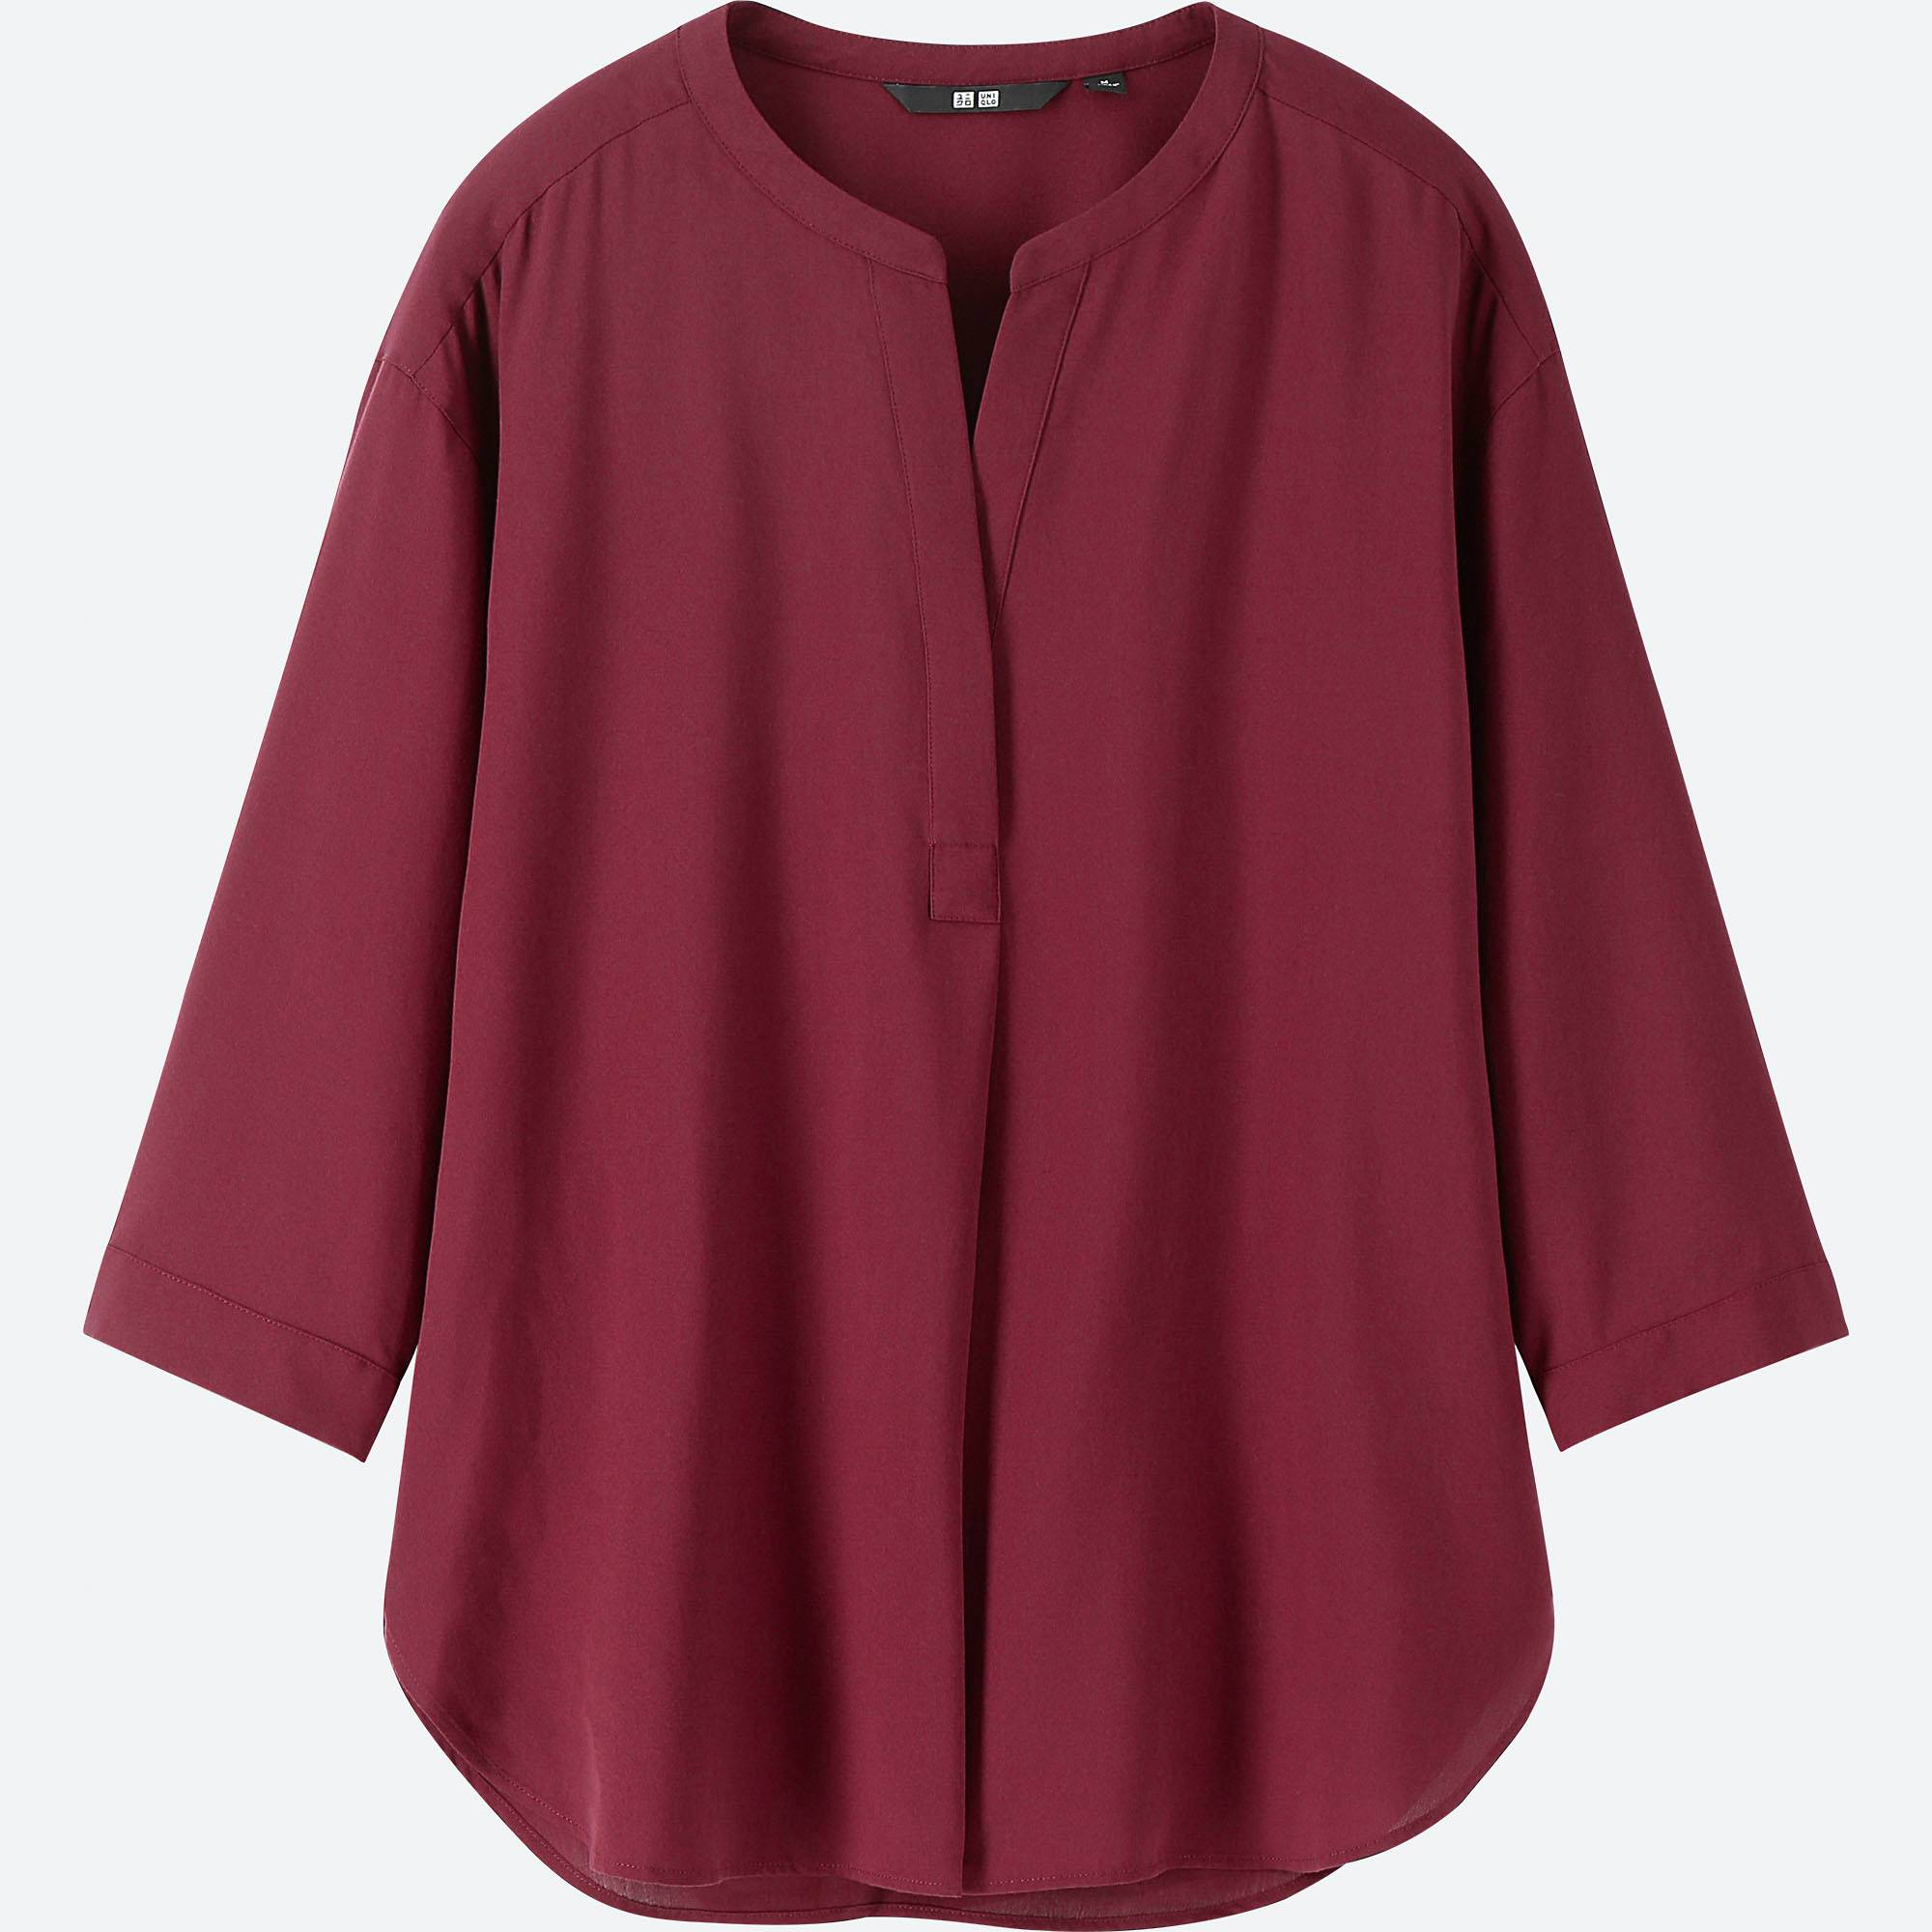 UNIQLO / Shirts And Blouses women rayon skipper collar 3/4 sleeve blouse